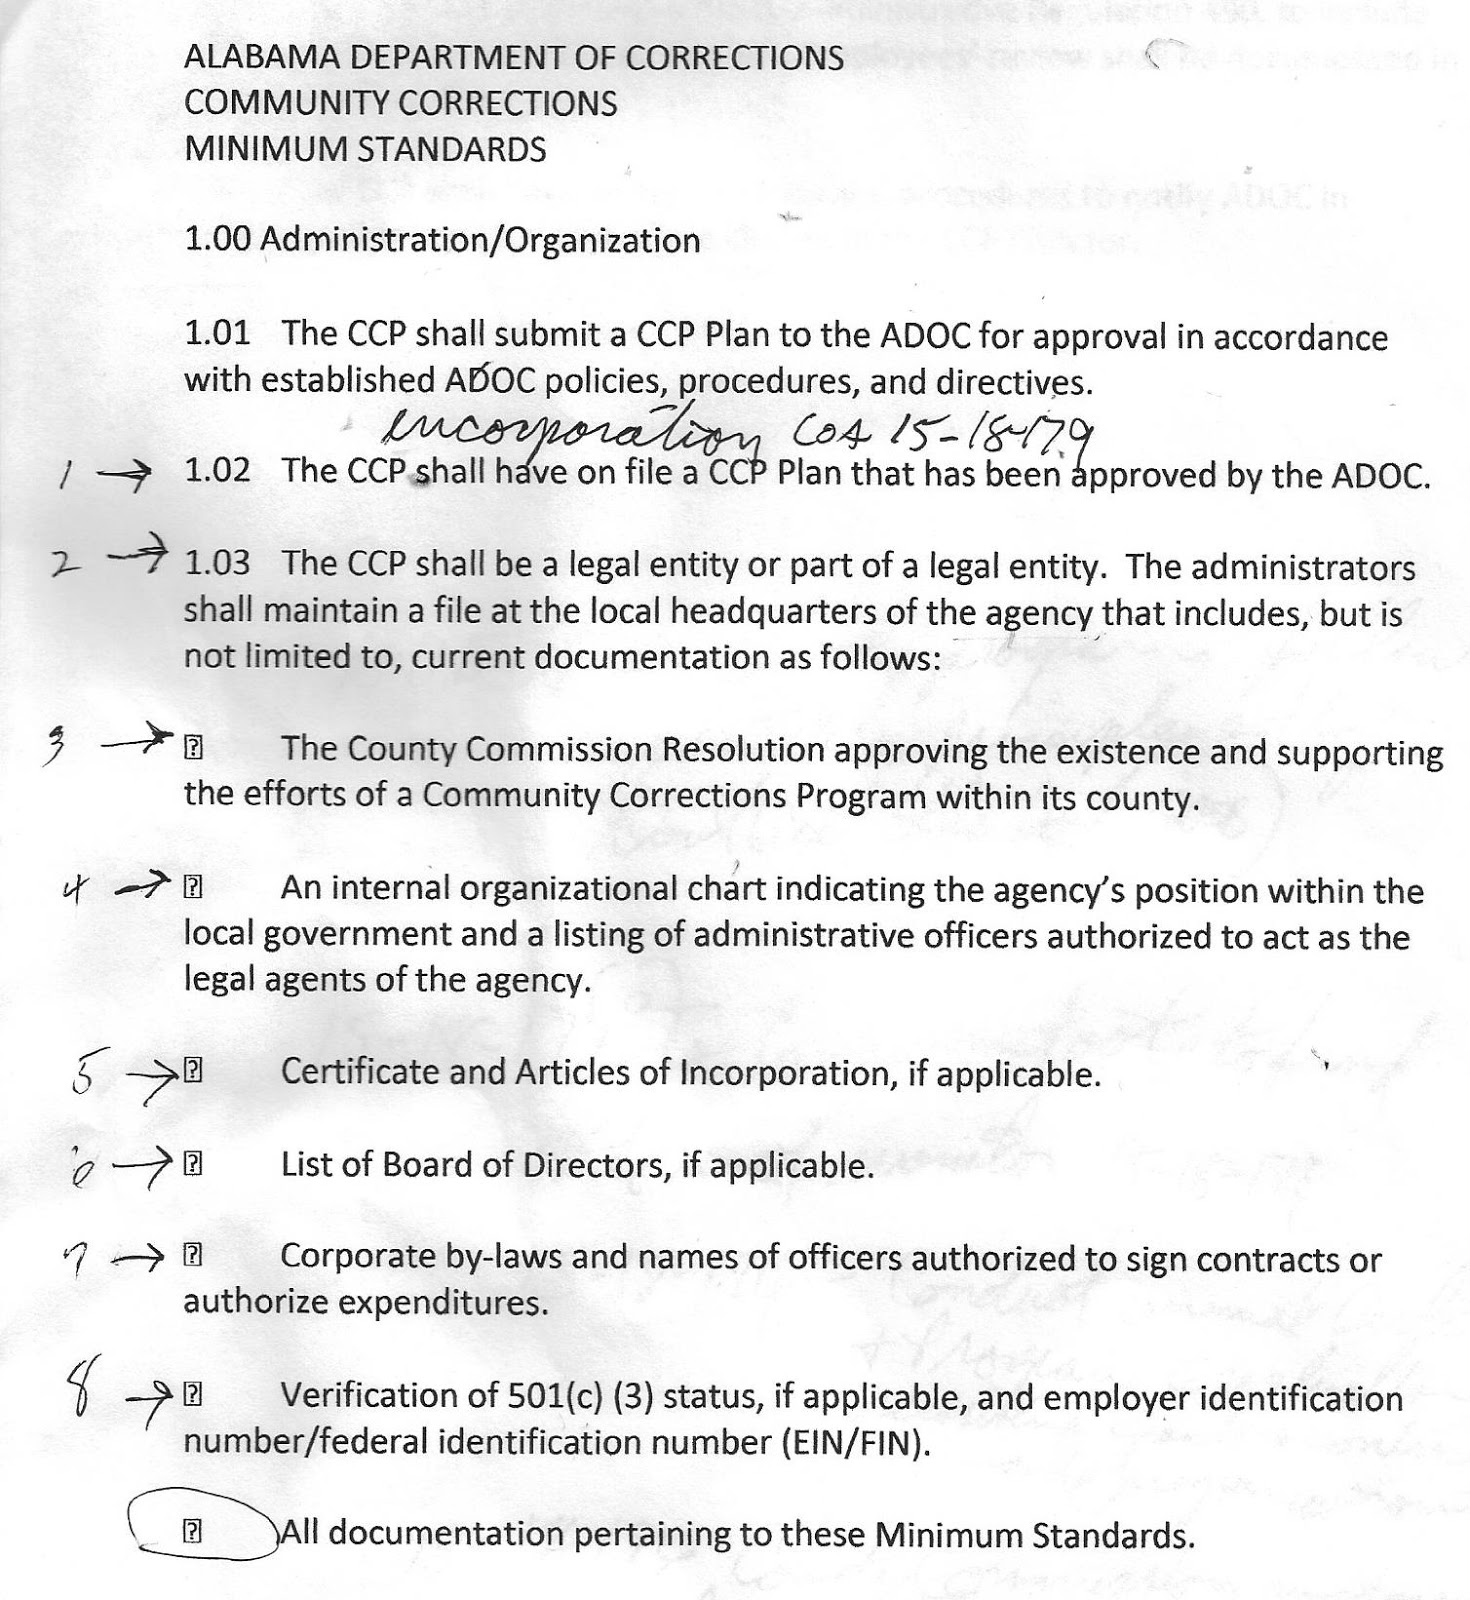 Alabama jackson county section - Agenda Item 3 Jackson County Commission To Request Documents From Jackson County Corrections And Court Referral Based On The Accountability Document